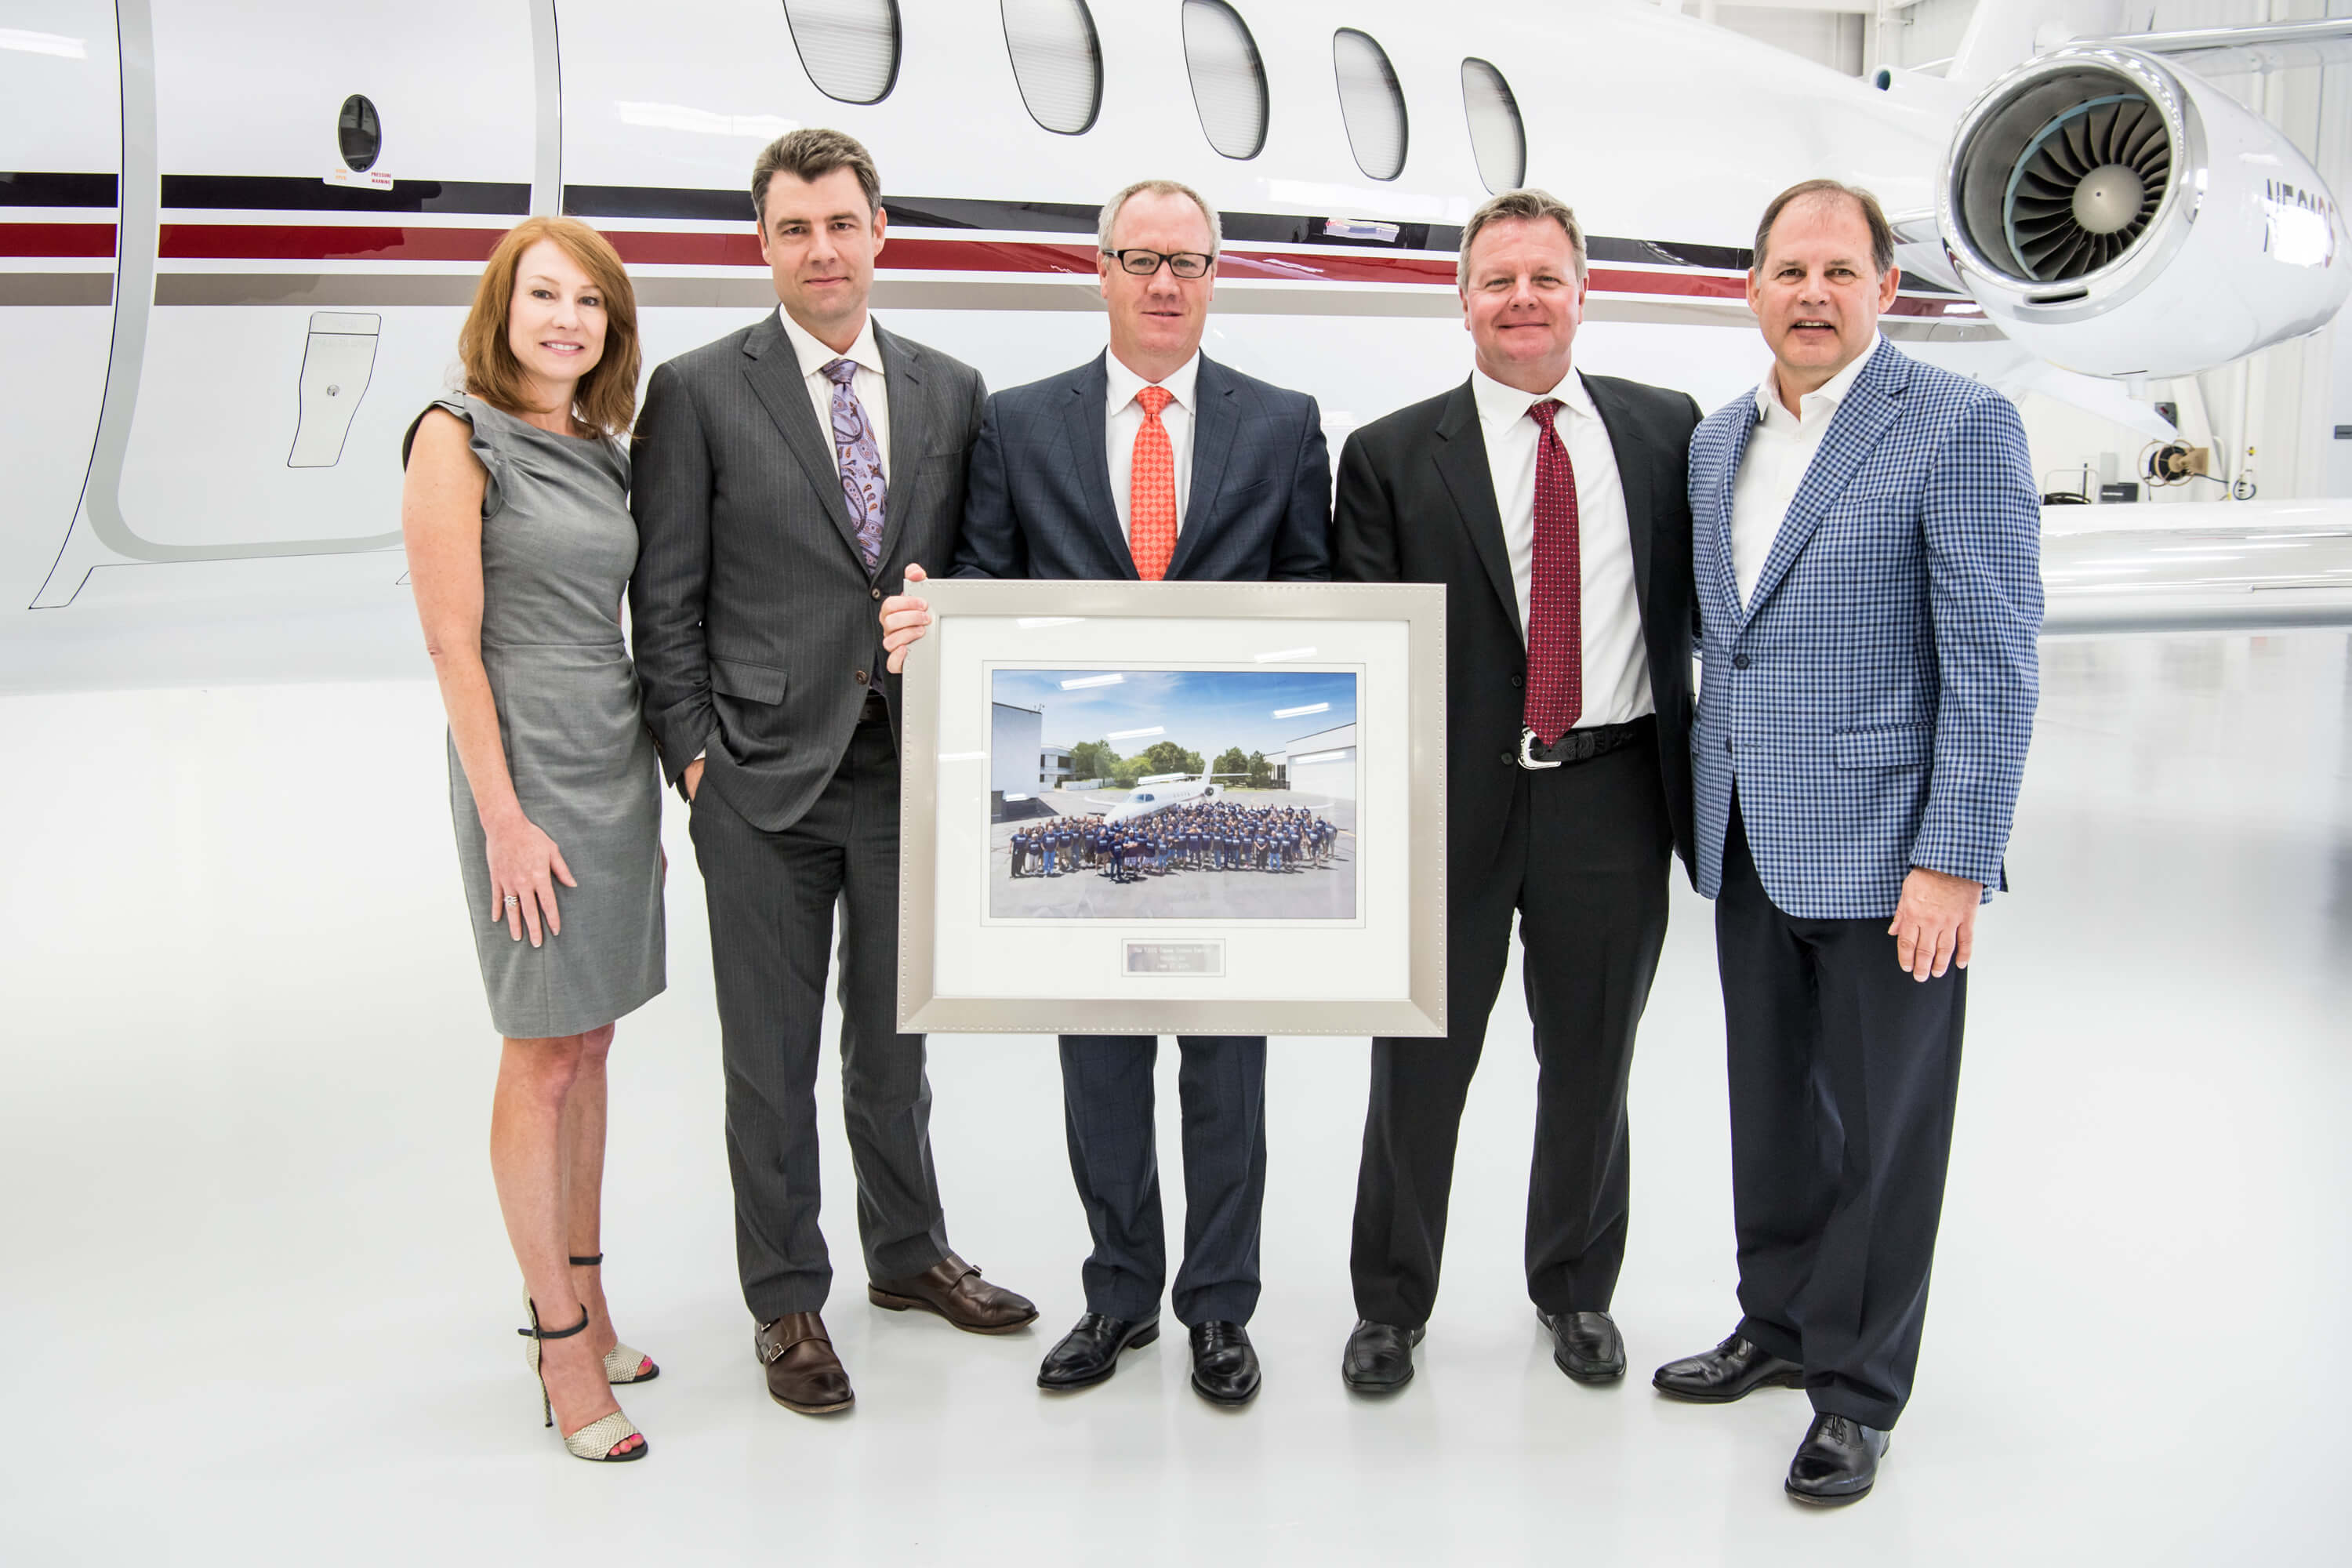 Pictured from left to right: Kriya Shortt, Senior Vice President of Sales & Marketing, Textron Aviation; Adam Johnson, CEO, NetJets; Doug Henneberry, Executive Vice President of Aircraft Asset Management, NetJets; Bill Noe, President and COO, NetJets; Scott Ernest, President & CEO, Textron Aviation